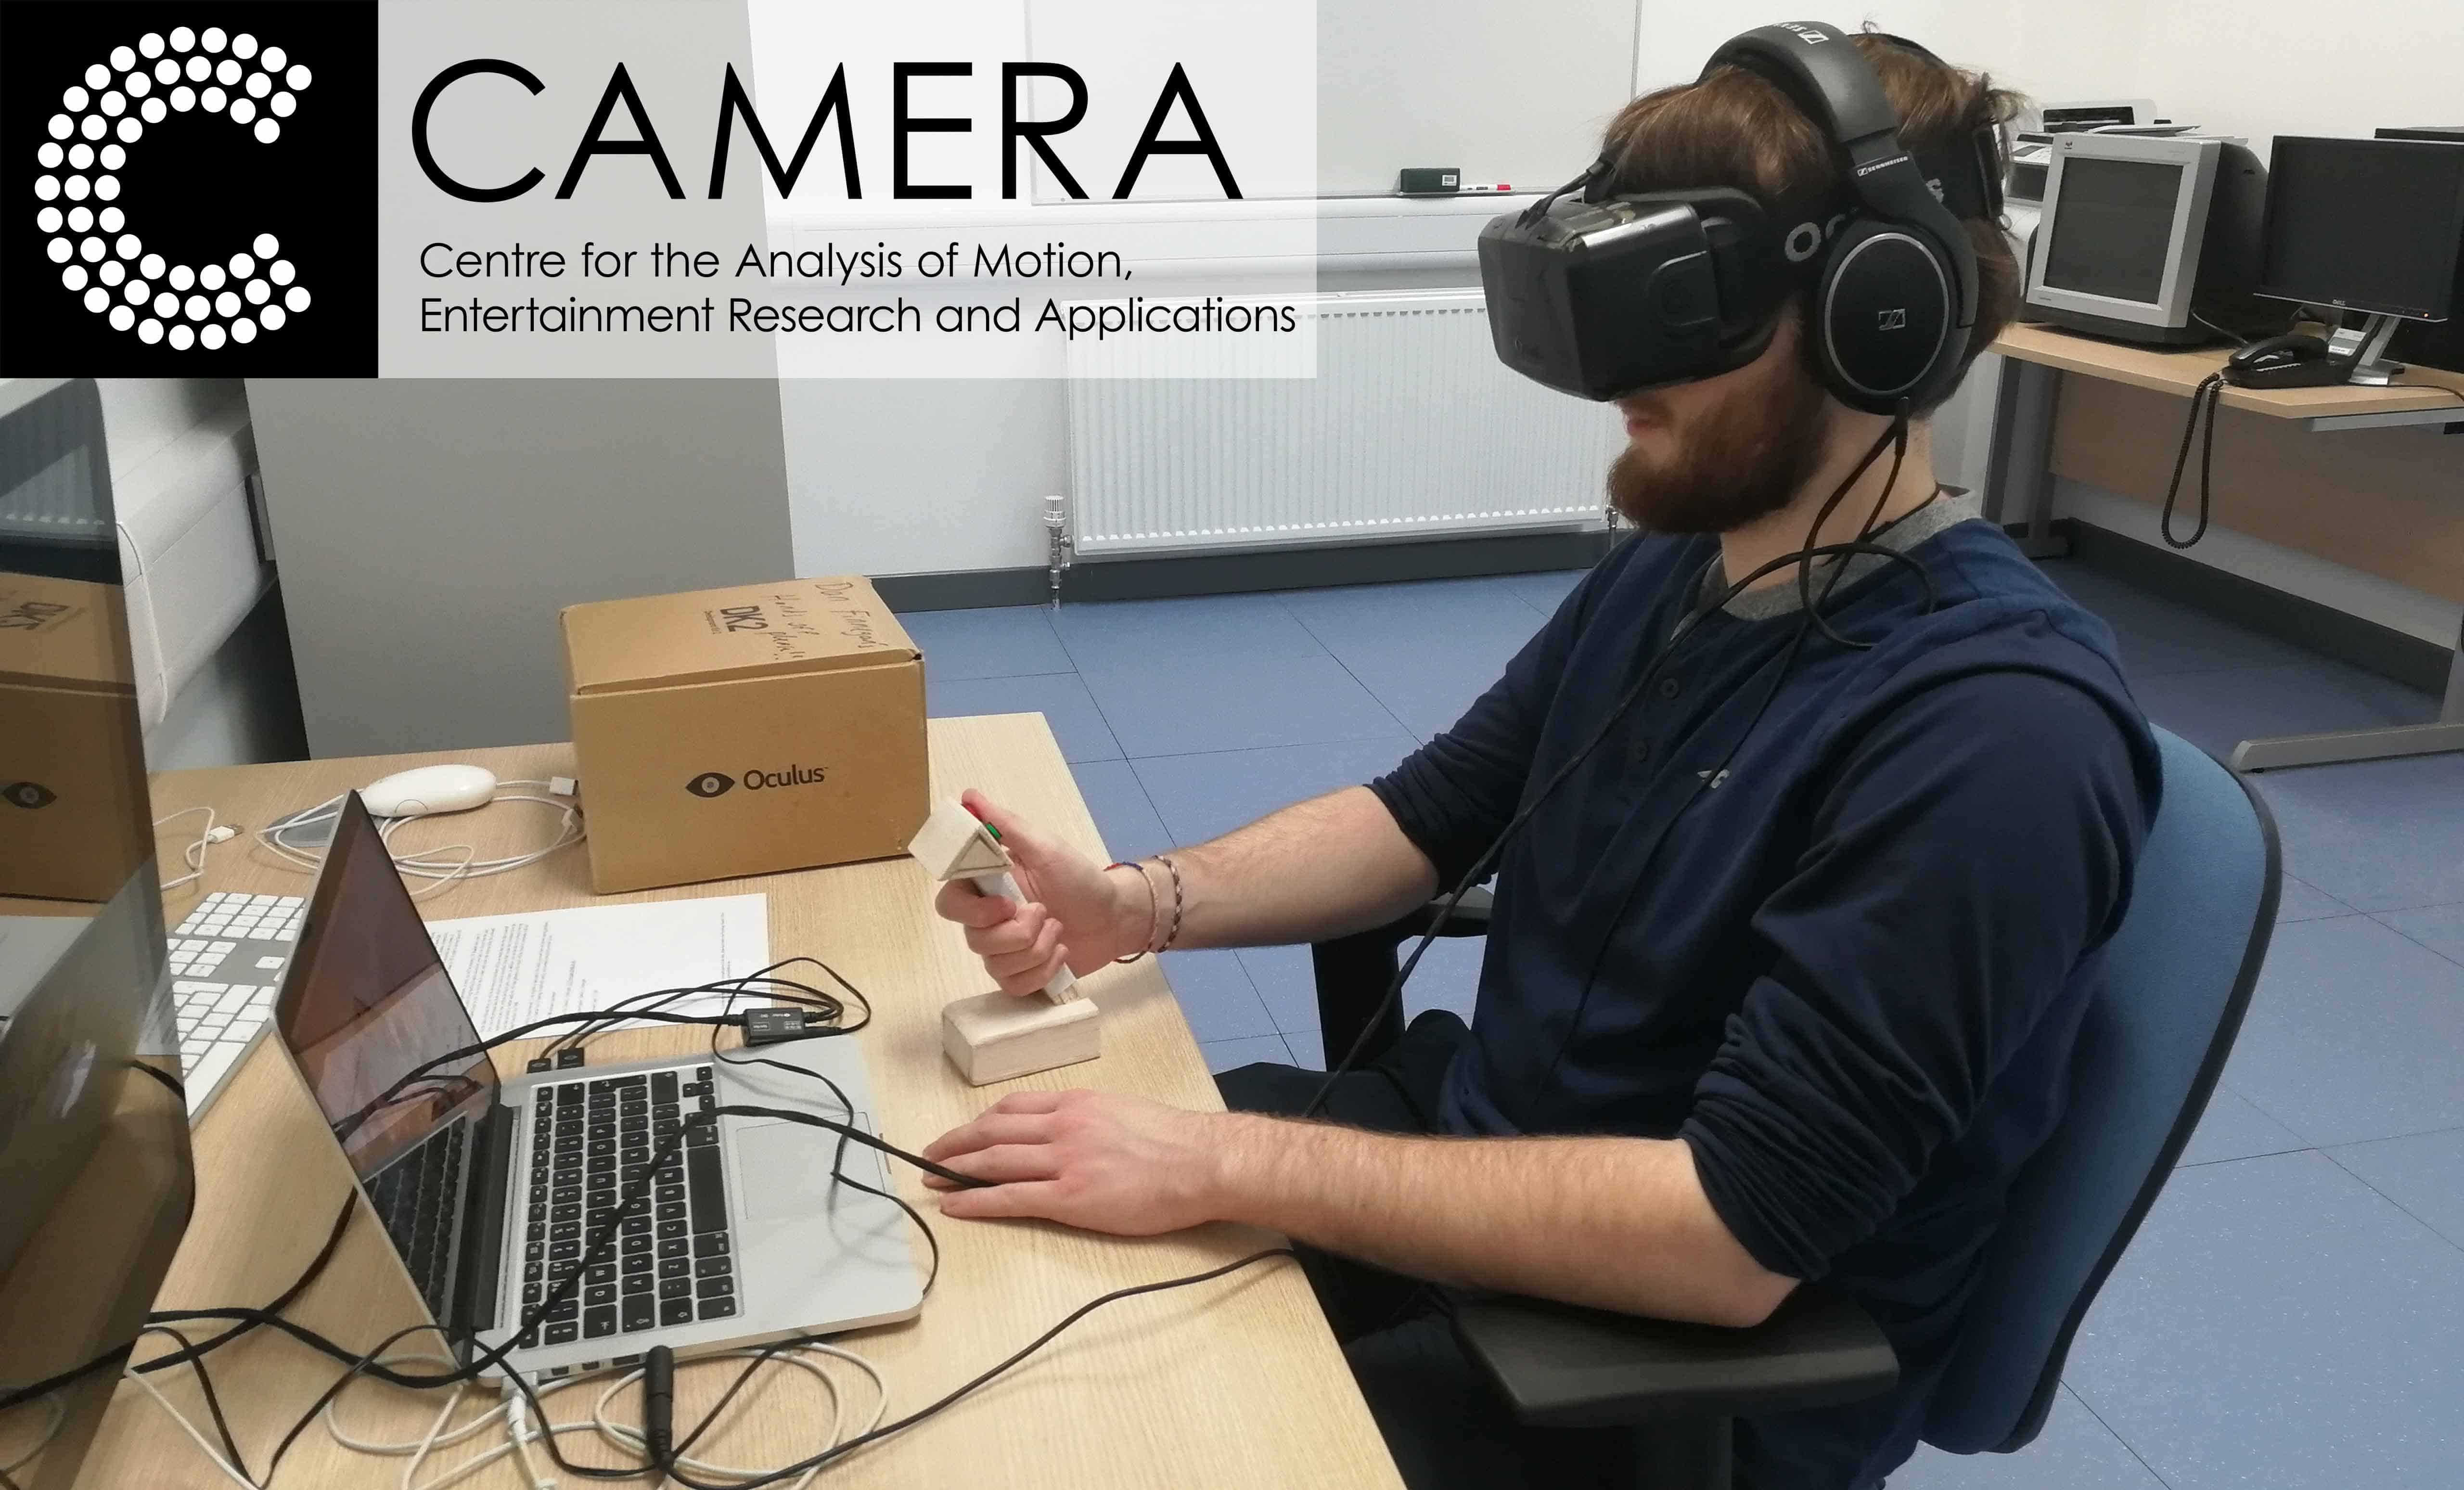 Bath's researchers are discovering what it really takes to create a believable virtual environment